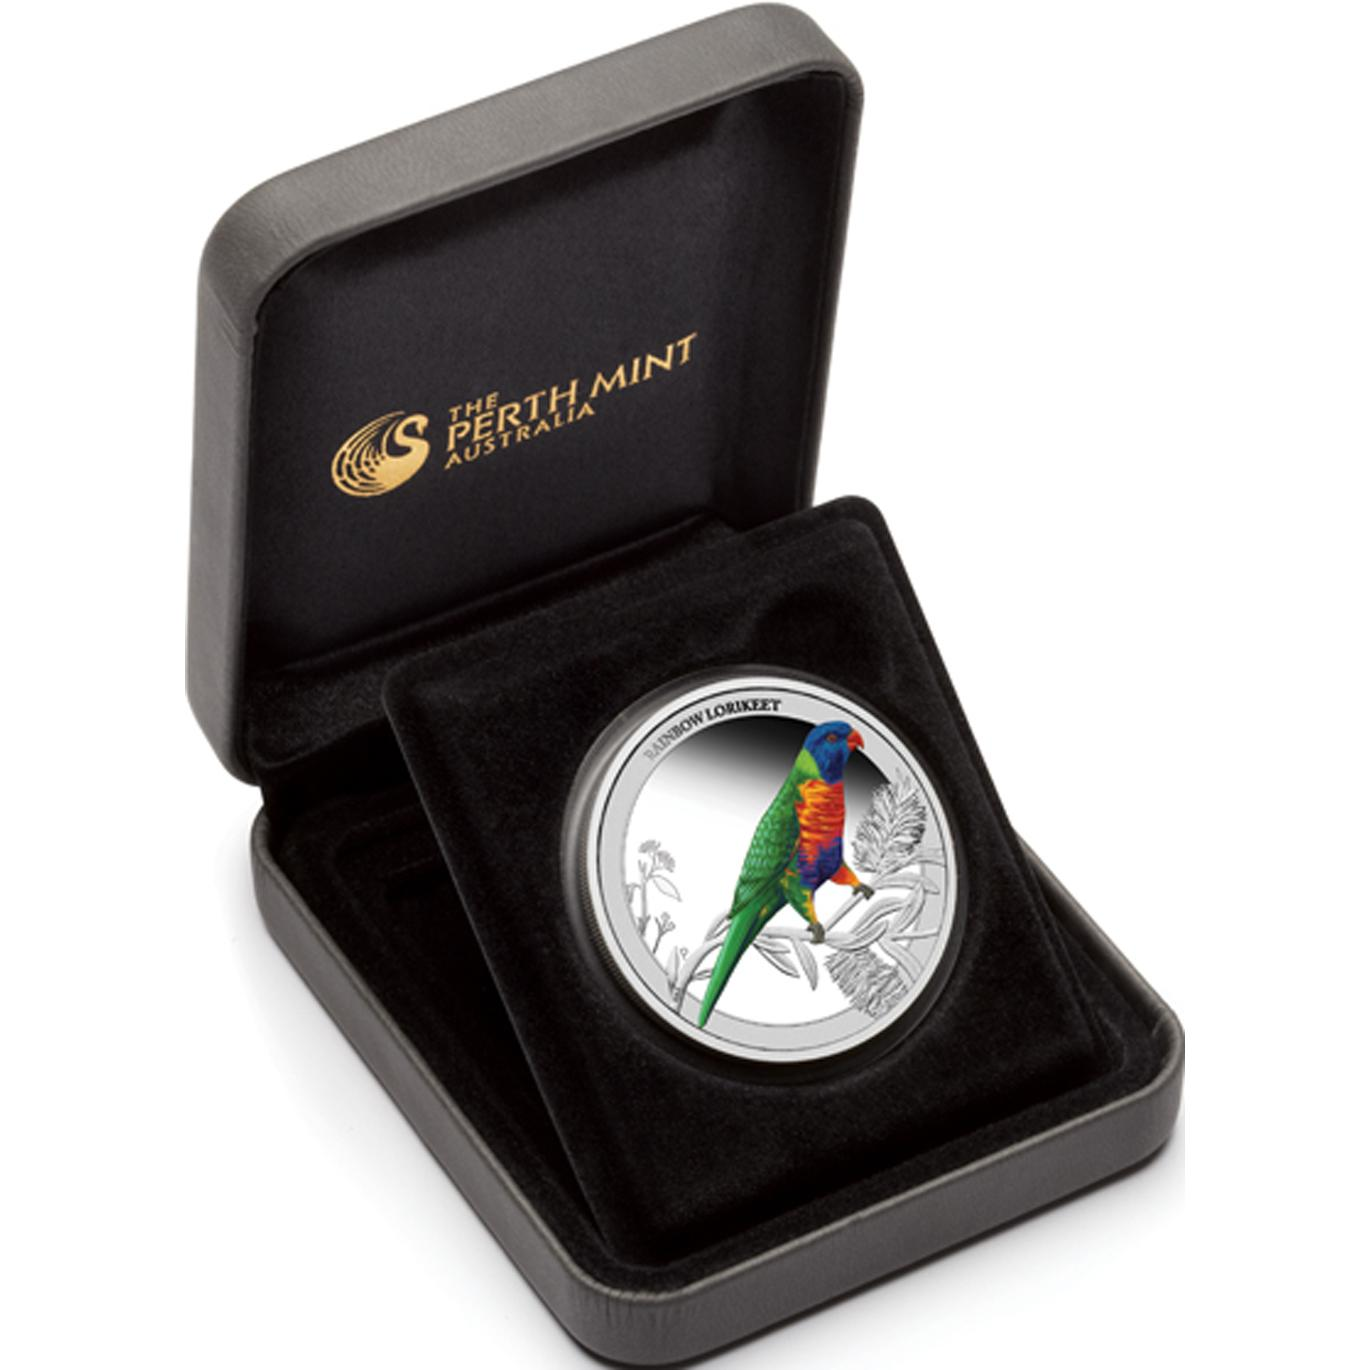 2013 1/2 oz Silver Proof - RAINBOW LORIKEET